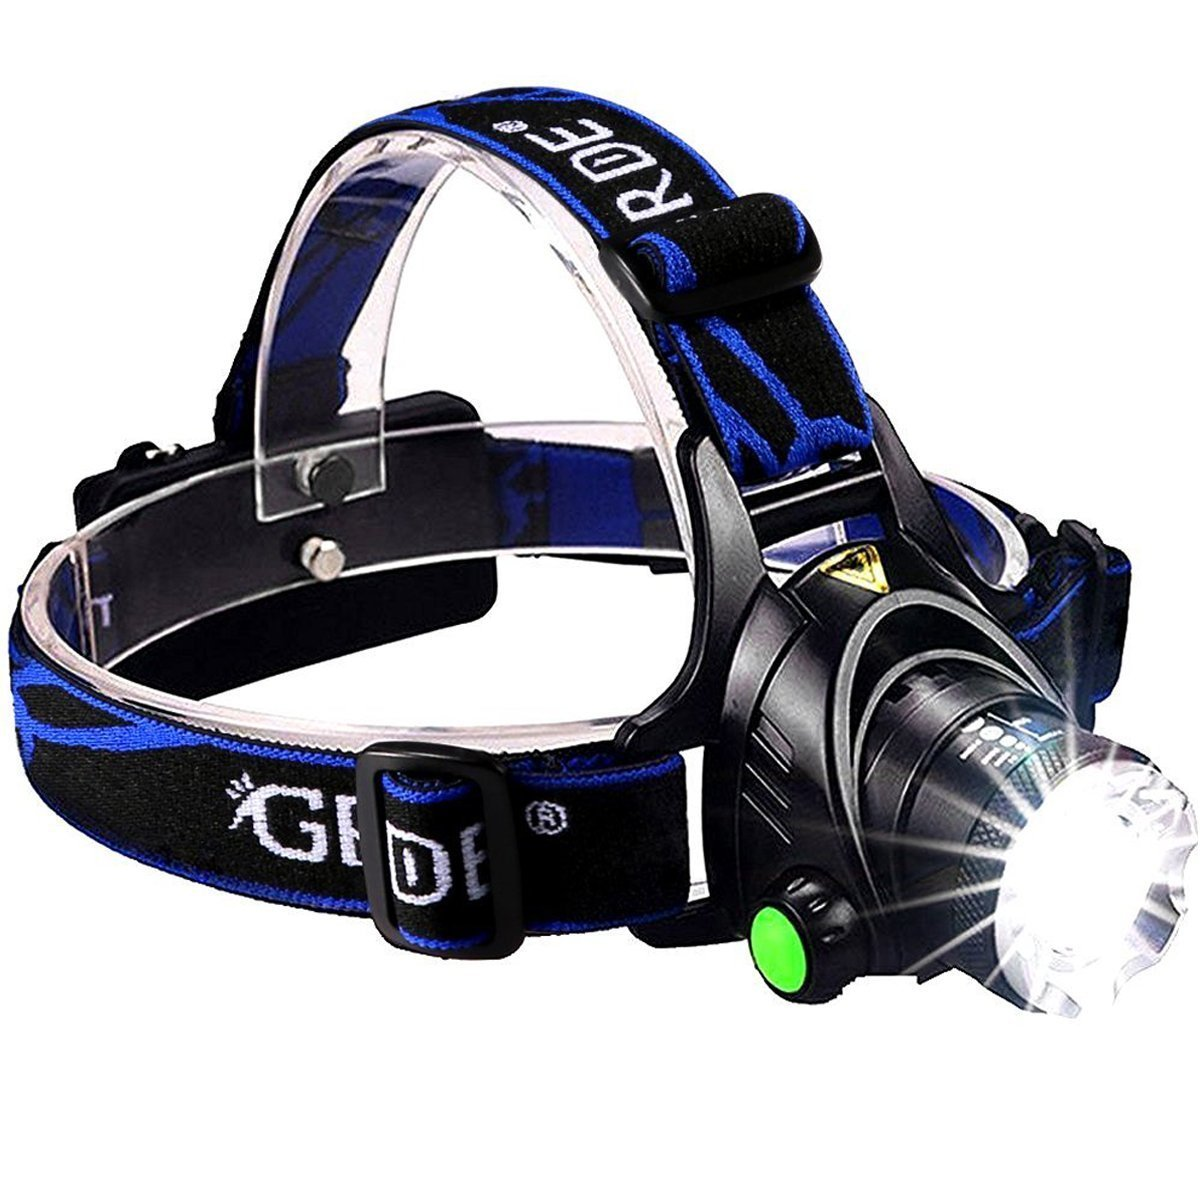 GRDE Zoomable LED Headlamp review